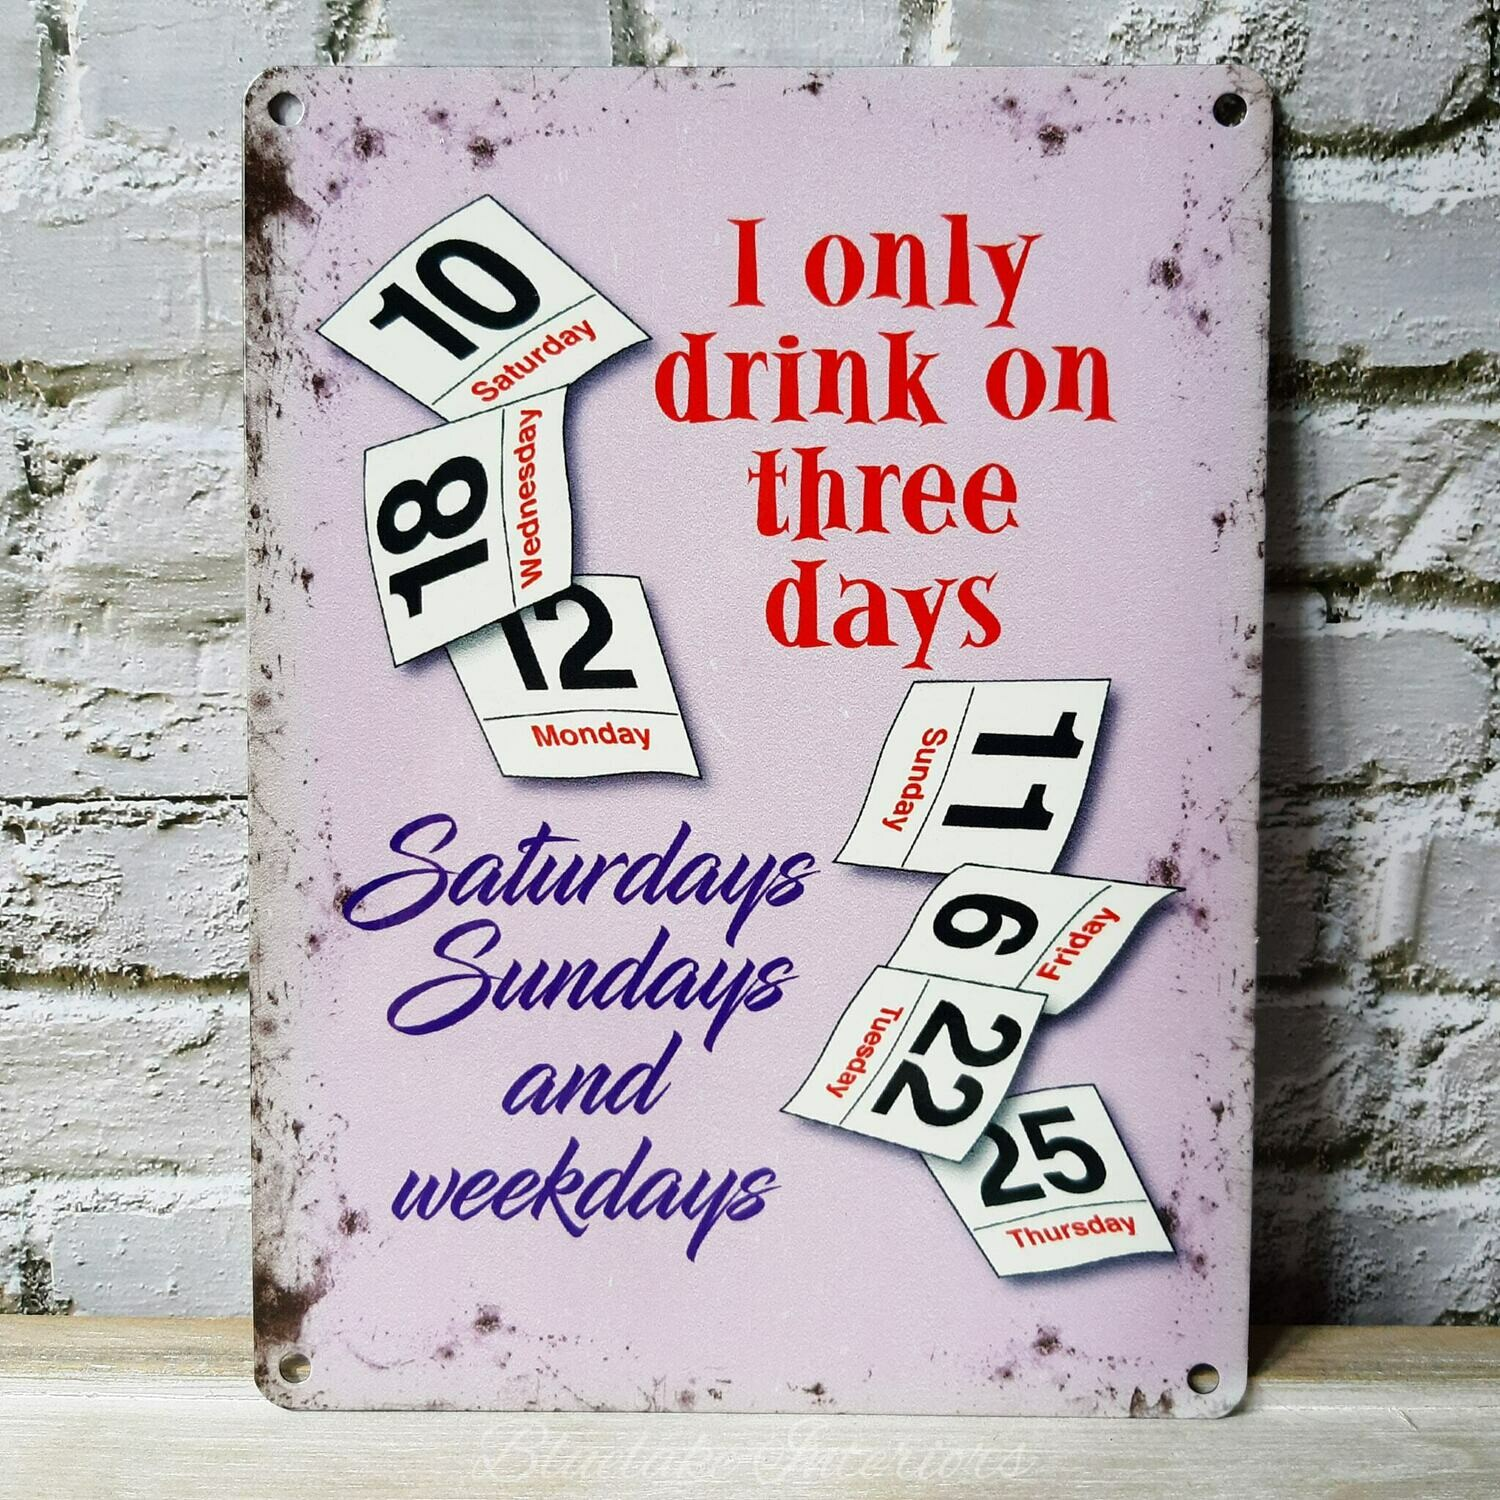 I Only Drink On Three Days Saturdays, Sundays And Weekdays Metal Wall Sign